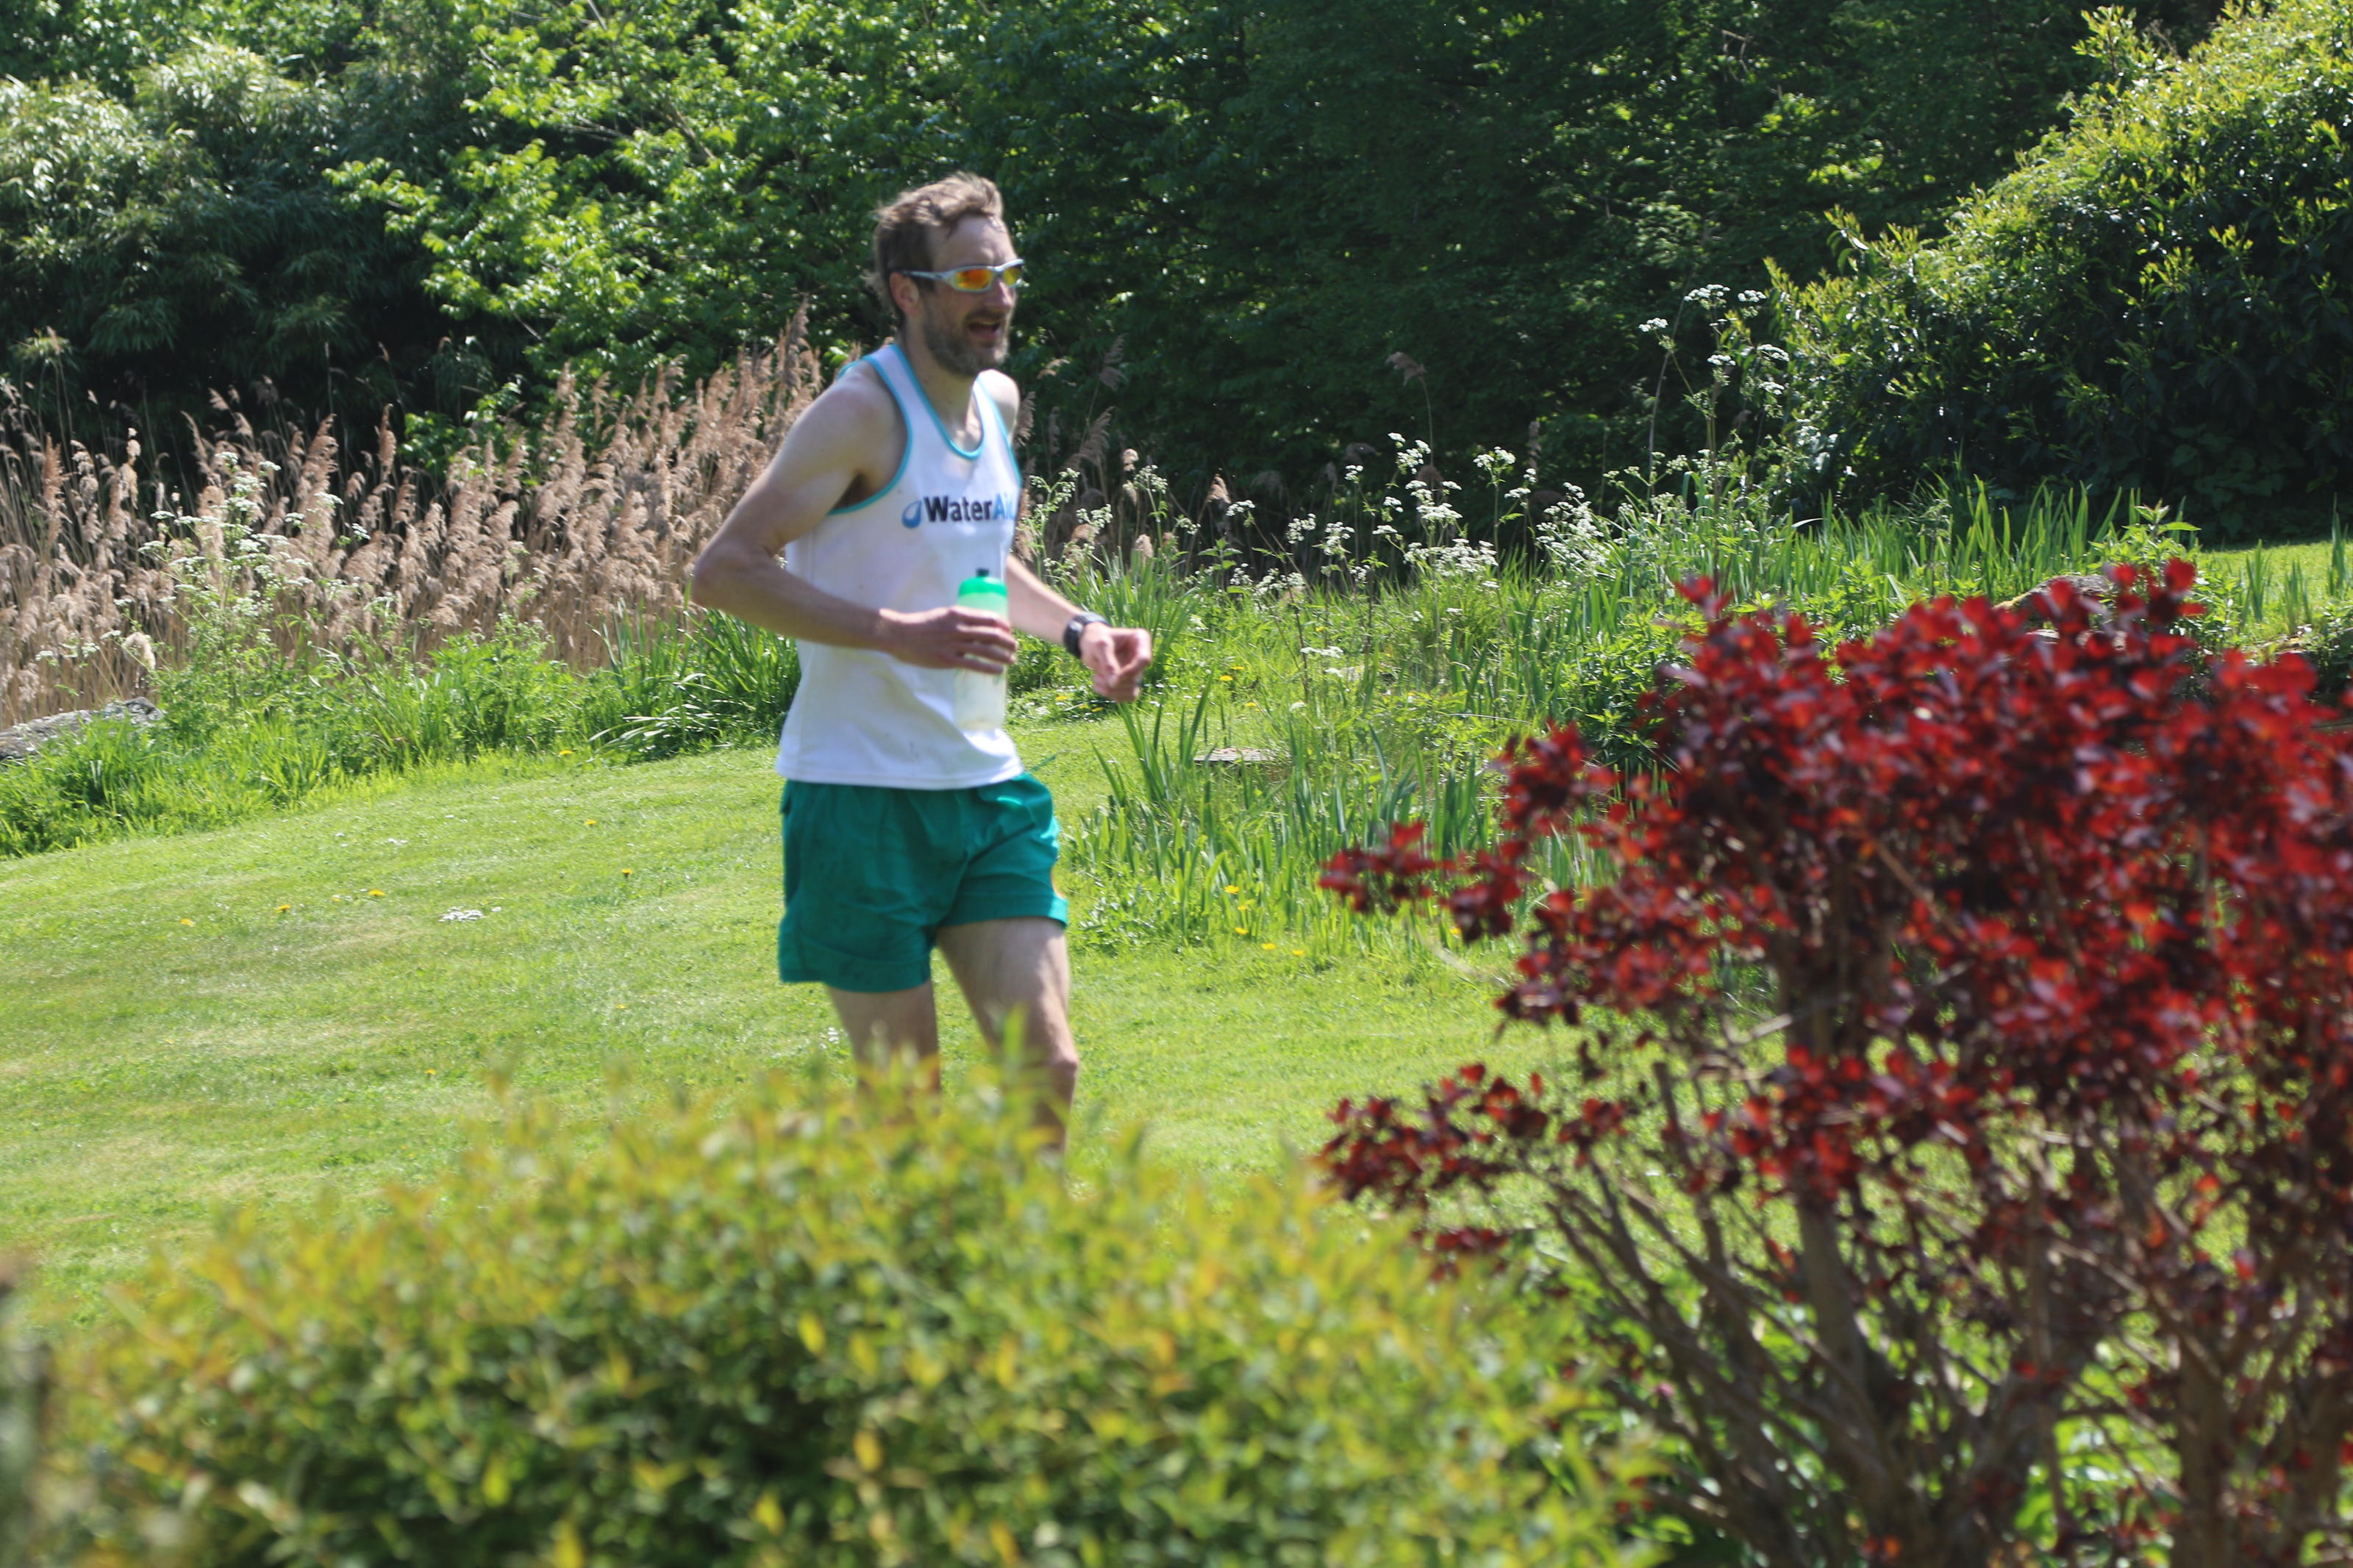 WaterAid supporter Marcus running his tap-shaped marathon for WaterAid